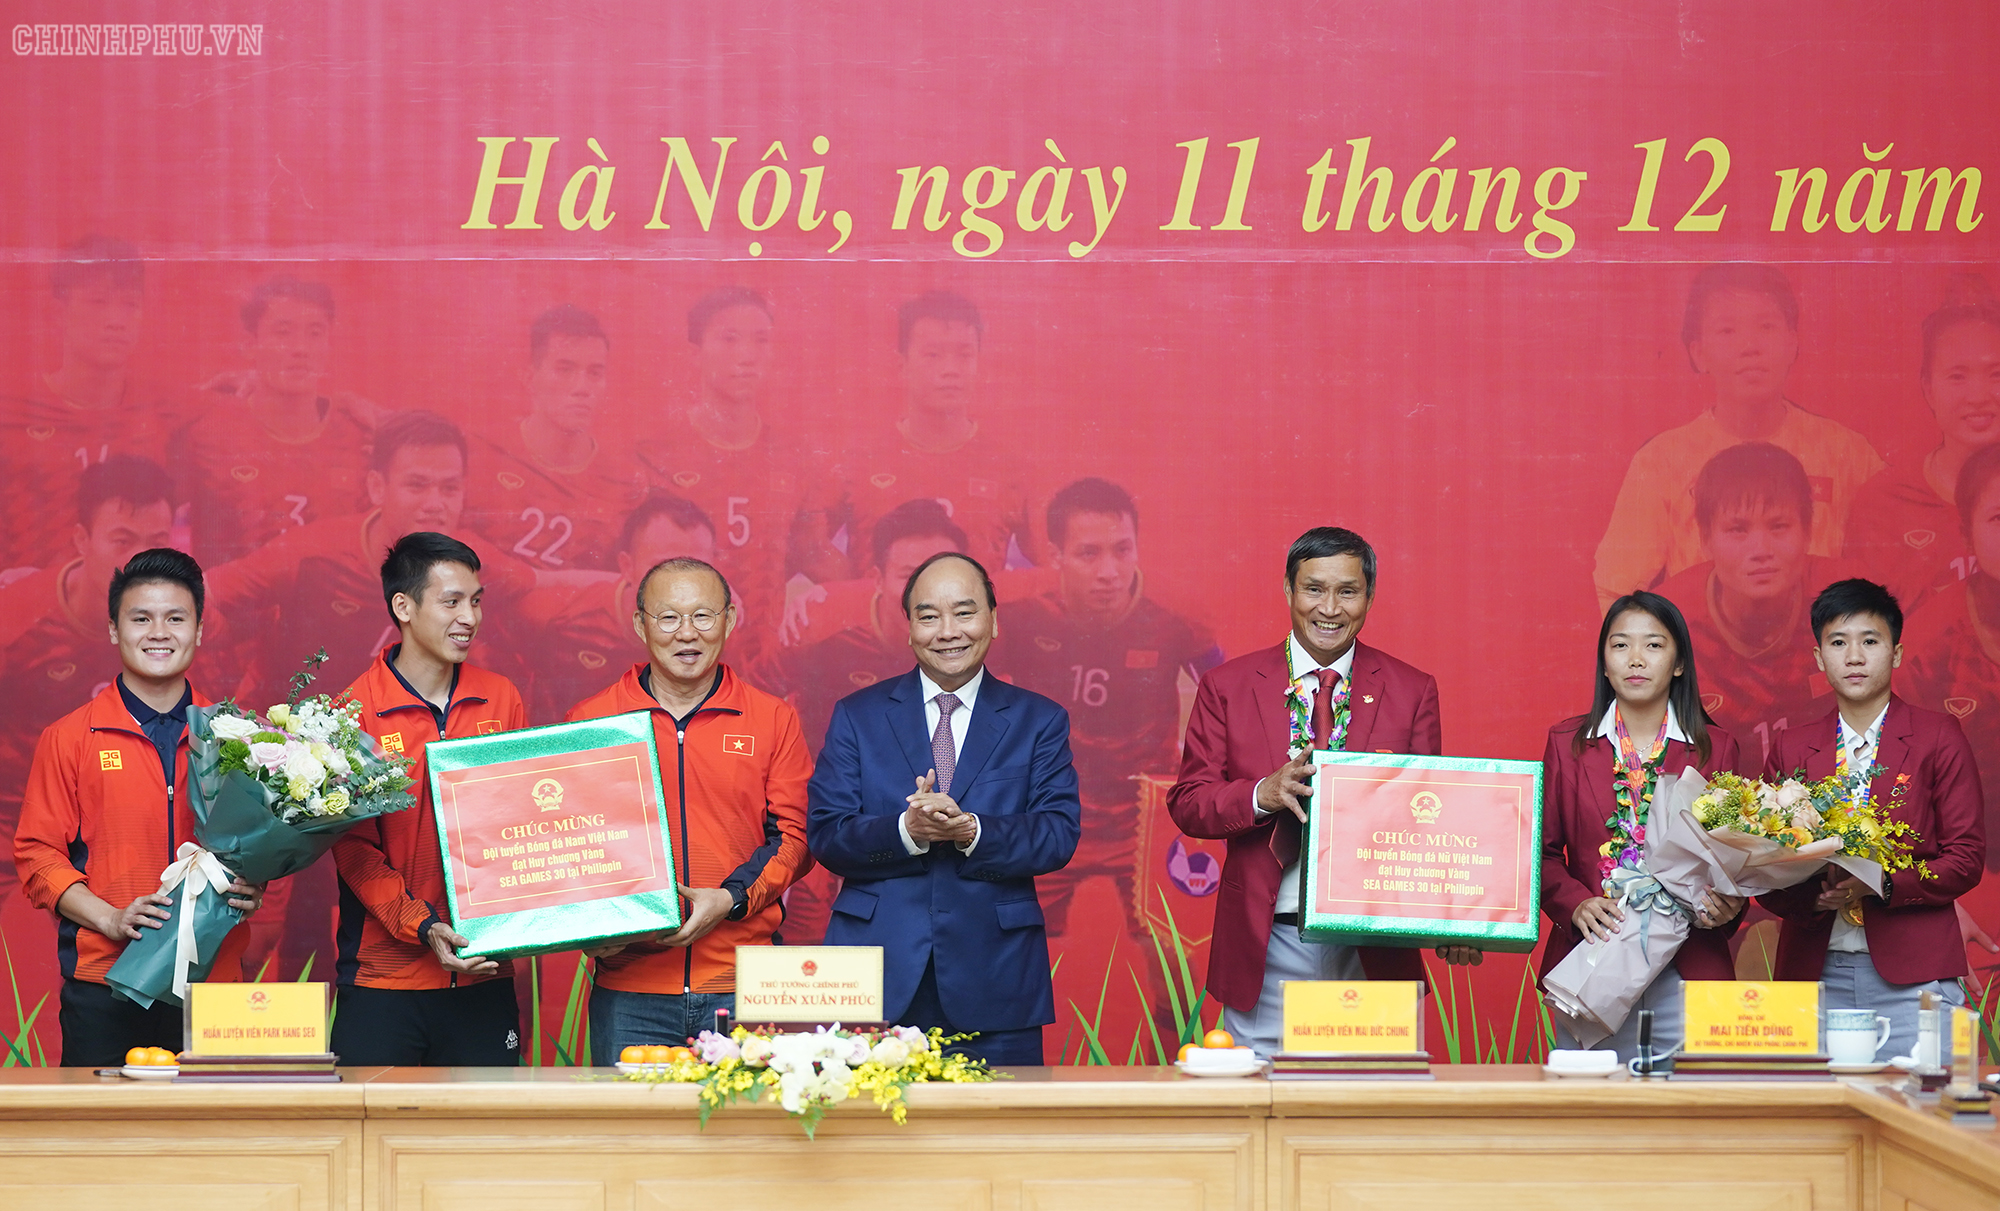 chien thang cua the thao tao cam hung, gop phan xay dung dat nuoc hinh anh 2